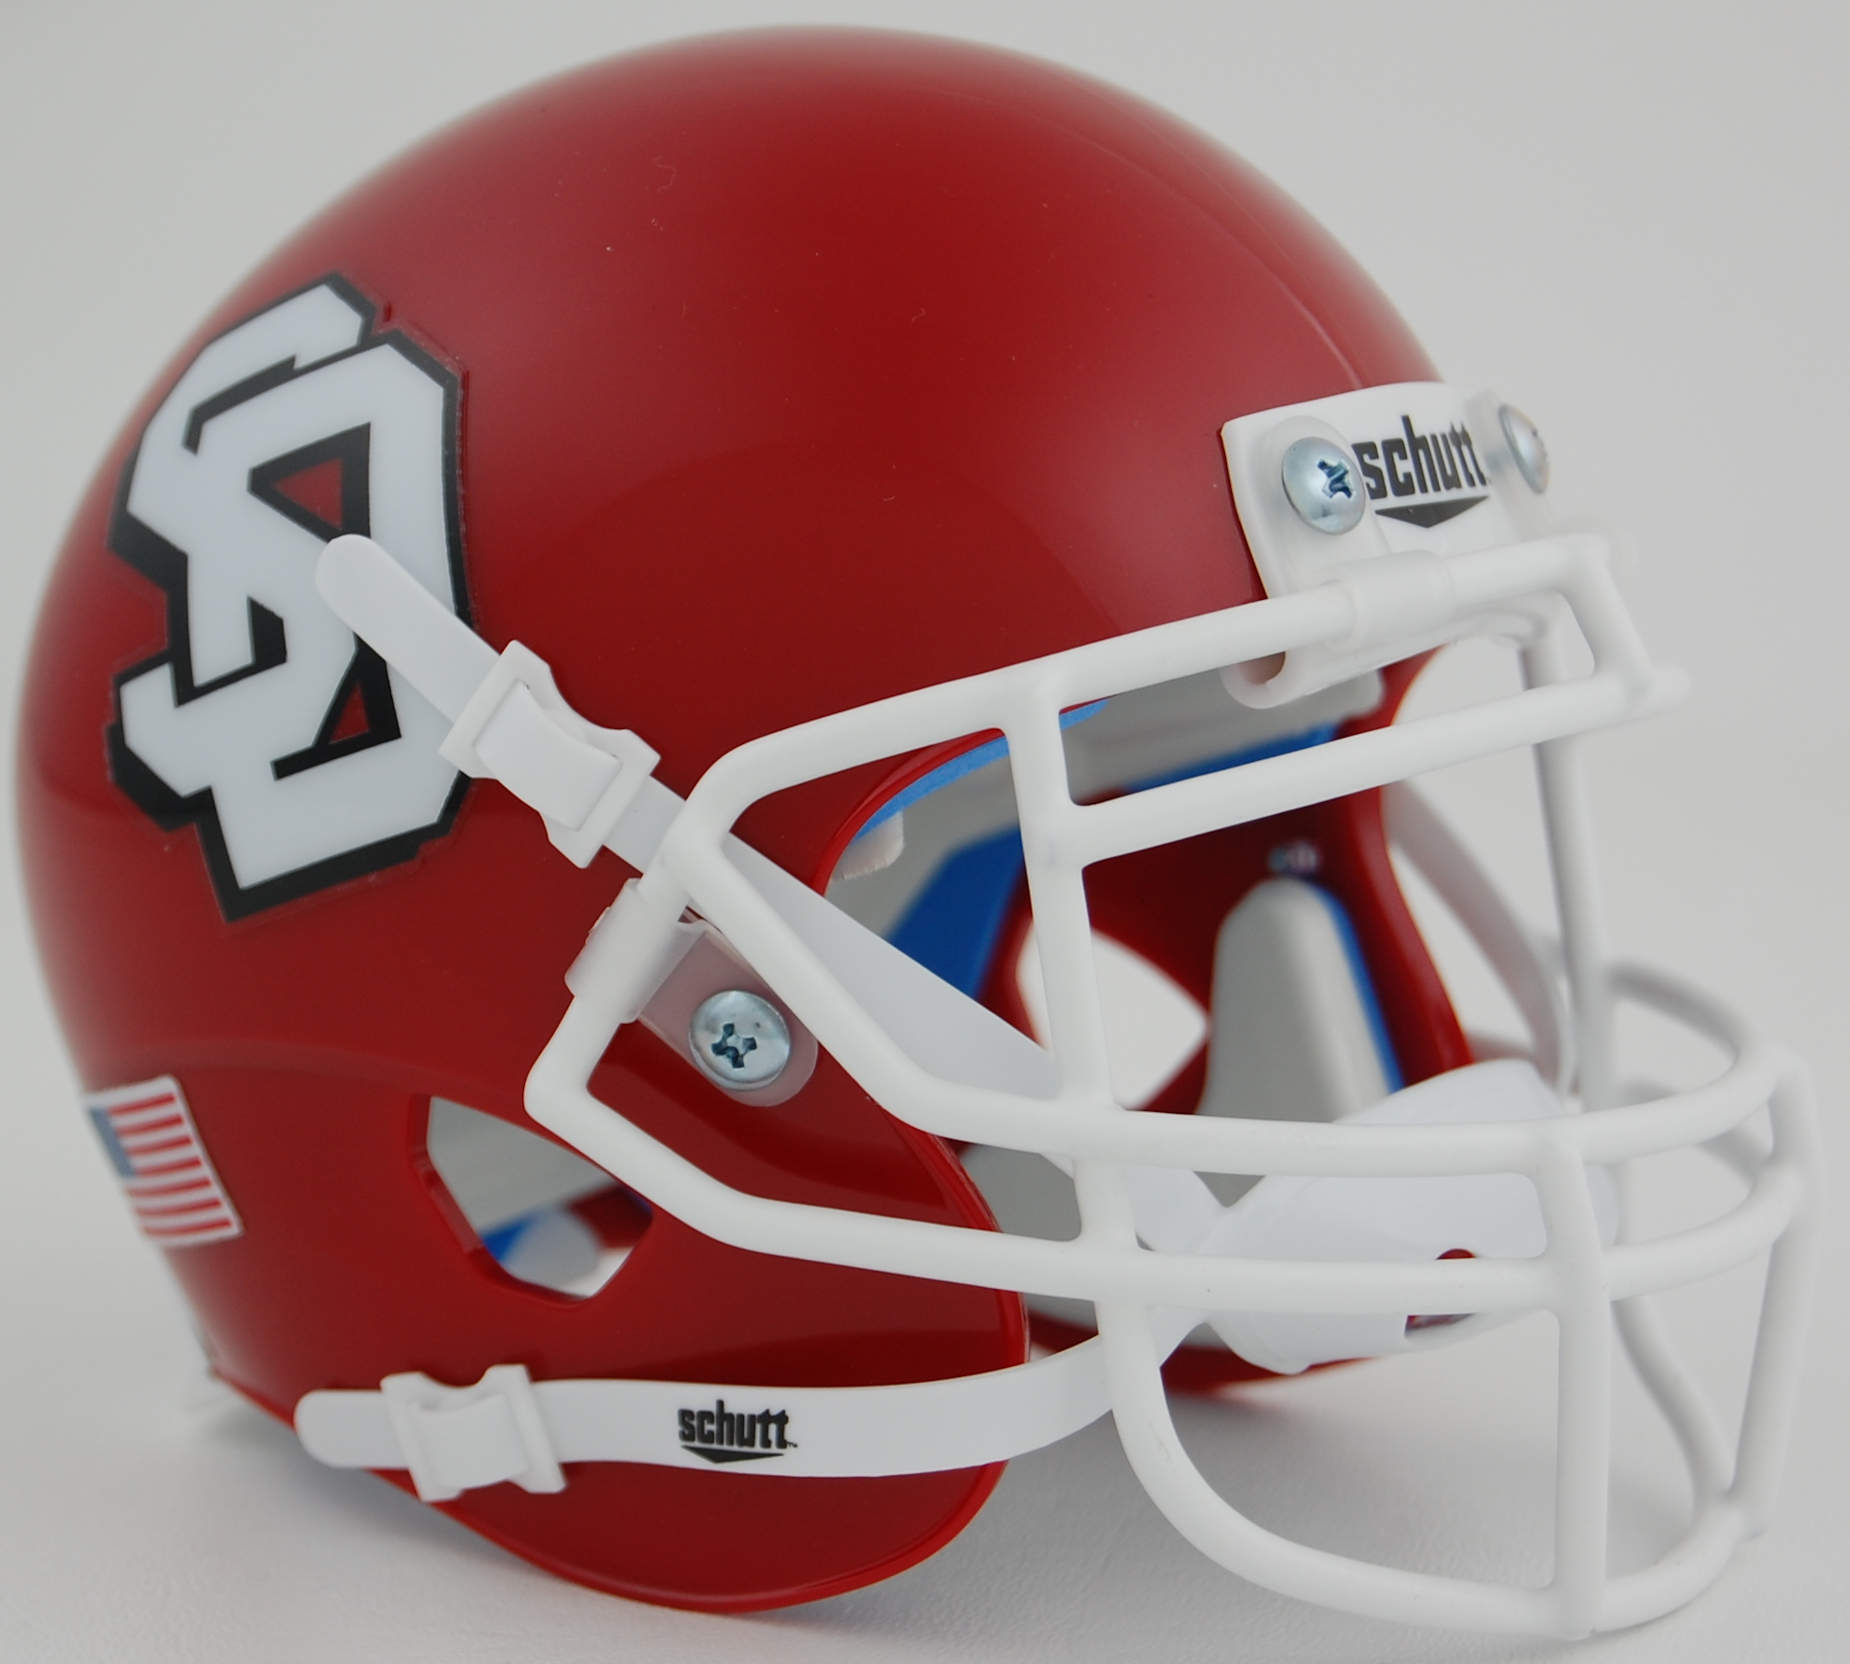 South Dakota Coyotes Authentic College XP Football Helmet Schutt